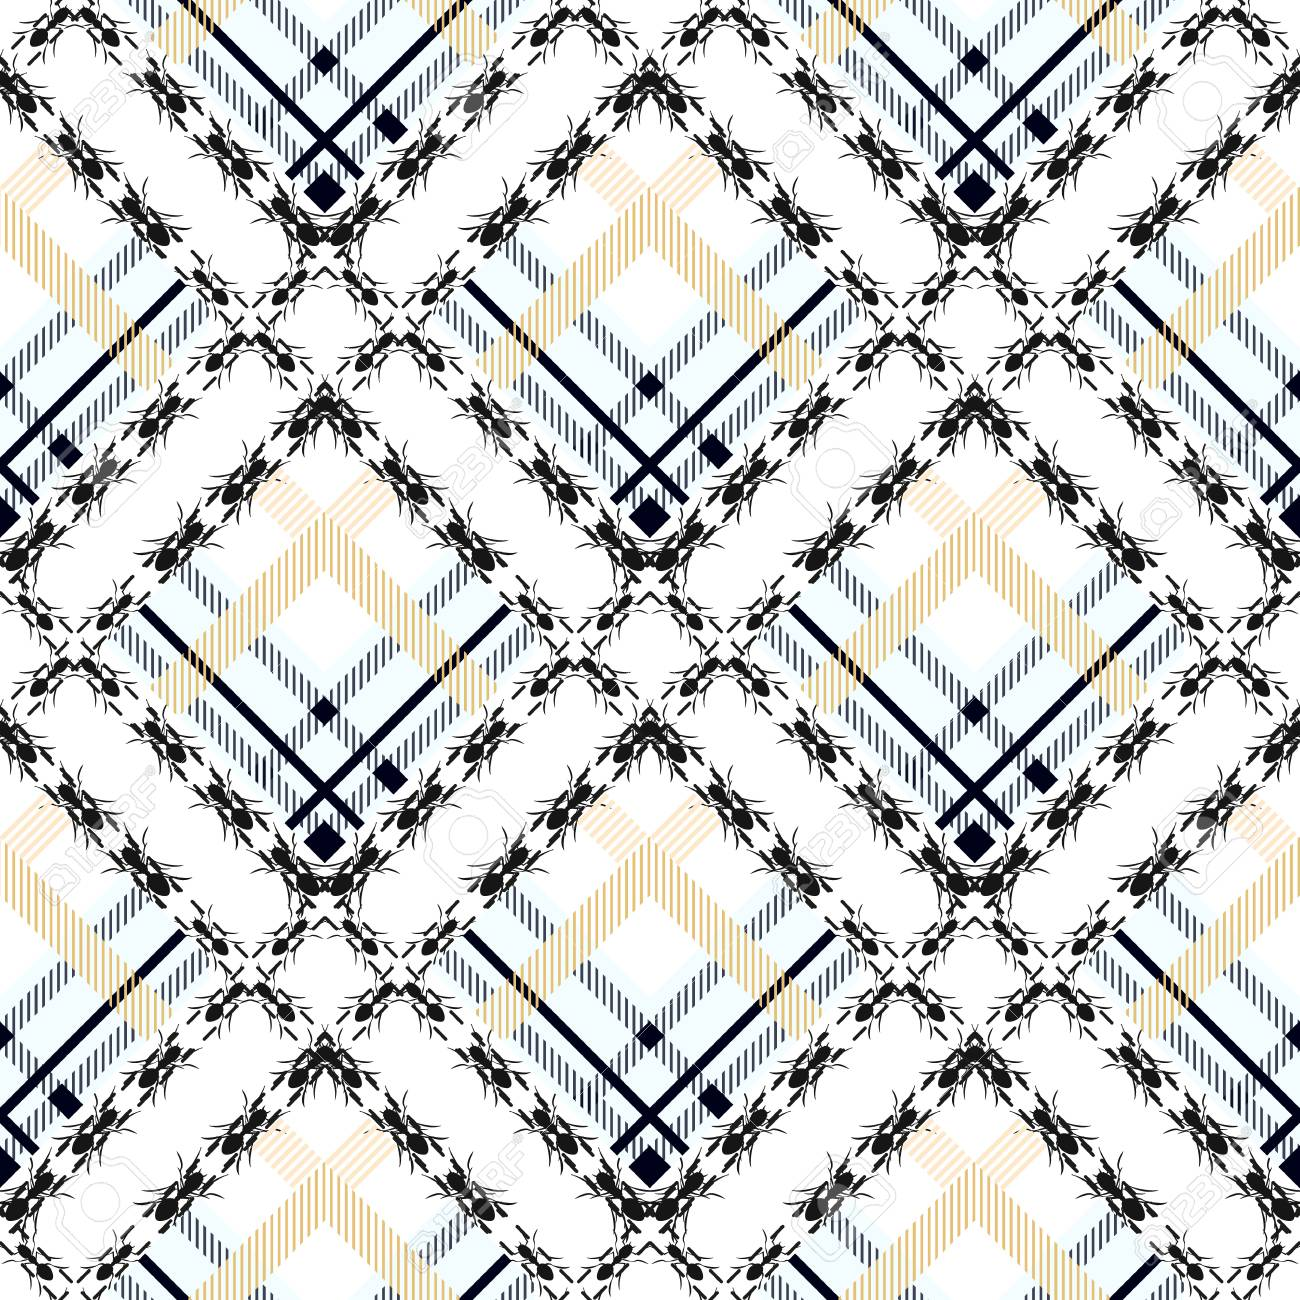 Black And White Fabric Texture Check Tartan With Ant Seamless